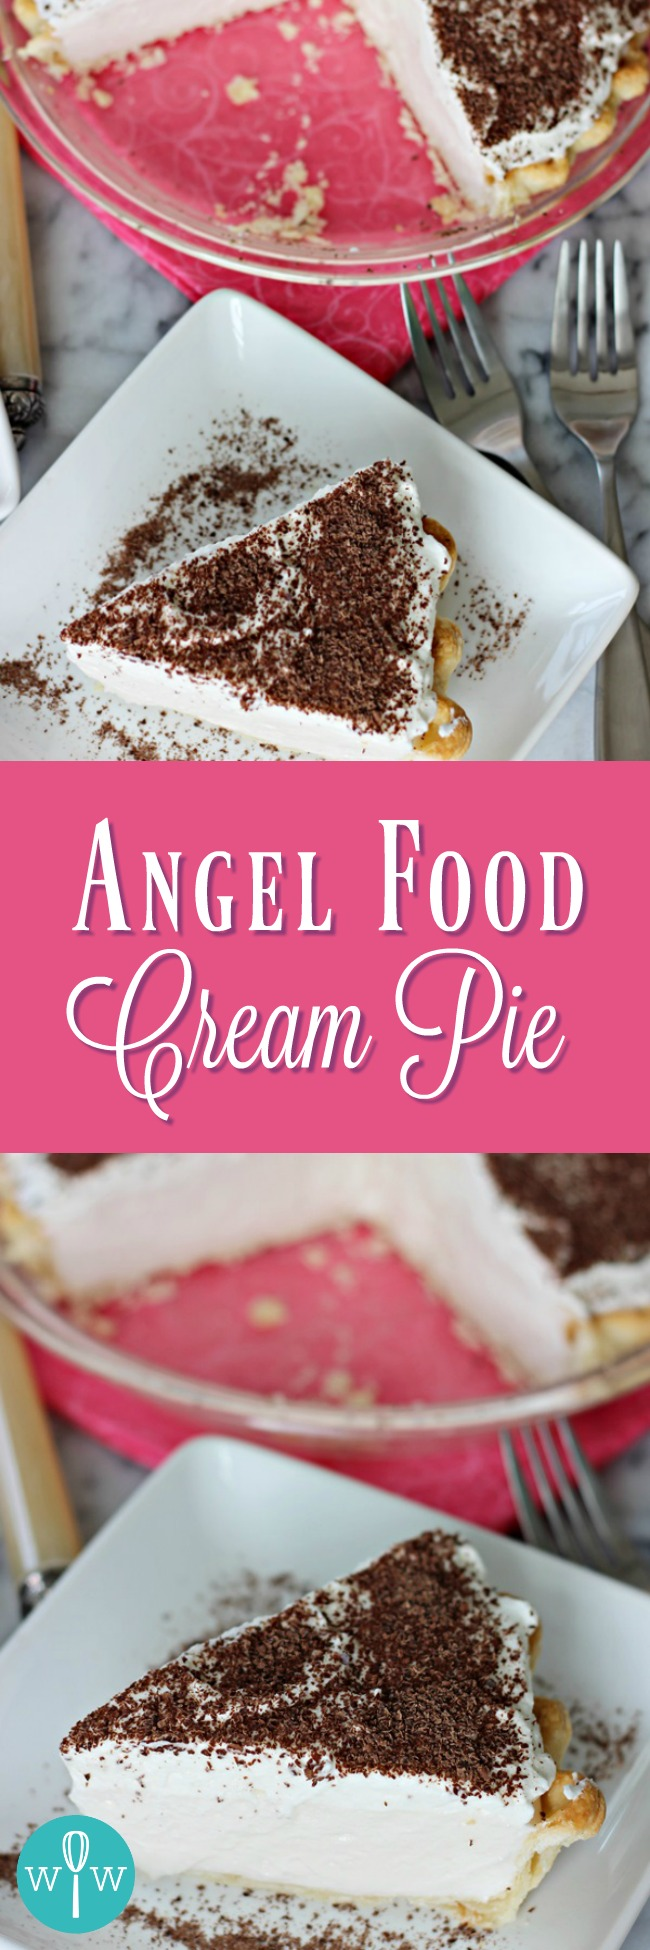 Angel Food Cream Pie – A light and creamy meringue filling topped with sweetened whipped cream and grated dark chocolate. | www.worthwhisking.com